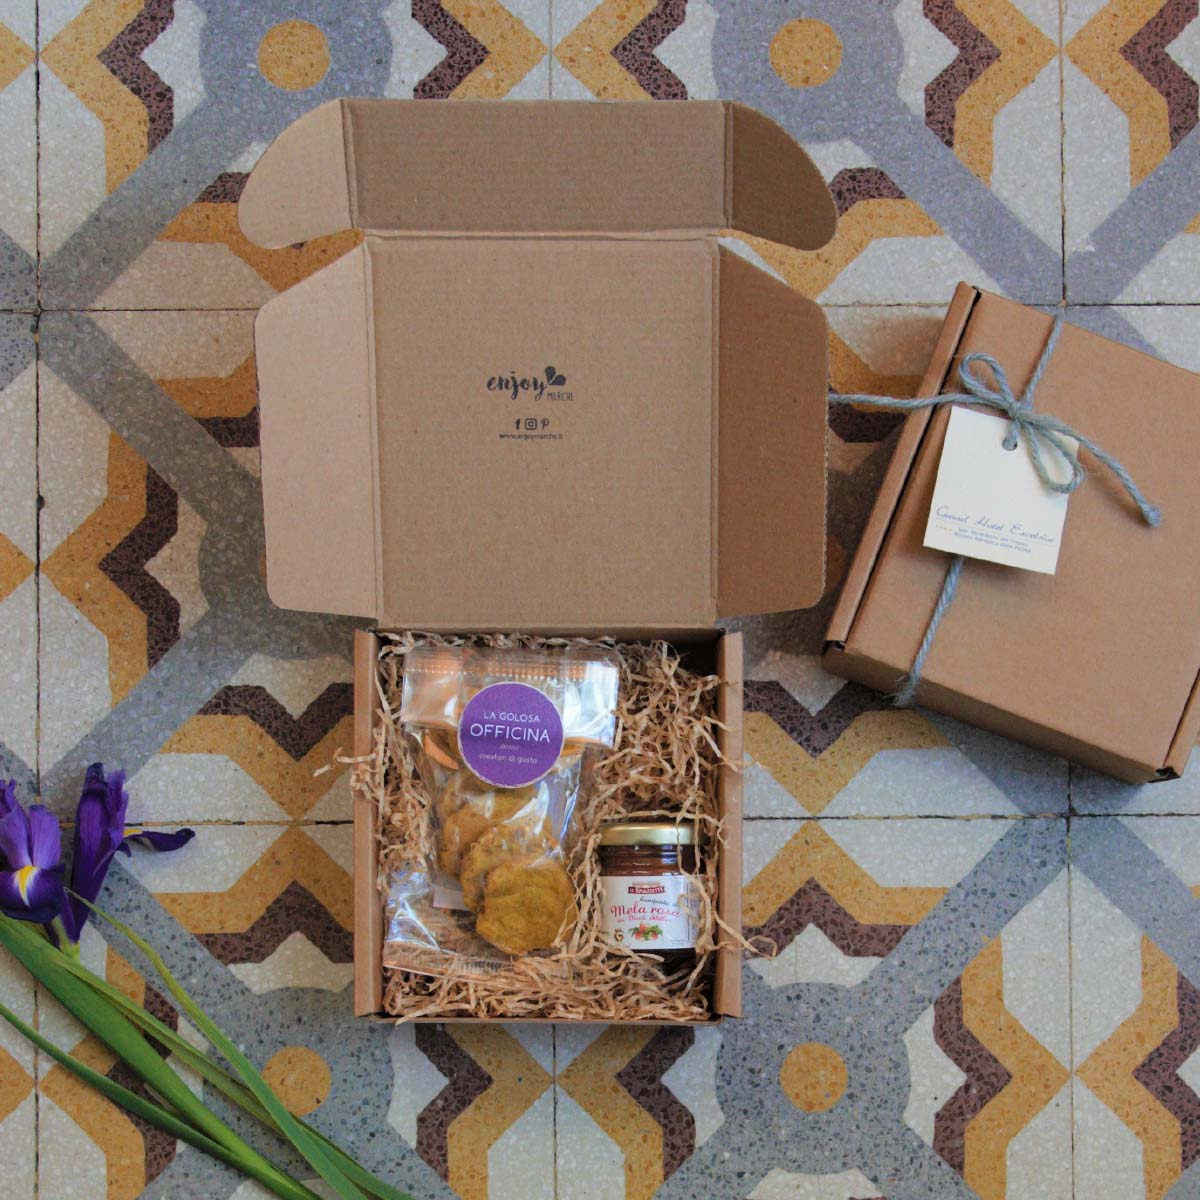 Hospitality welcome gifts Enjoy Marche